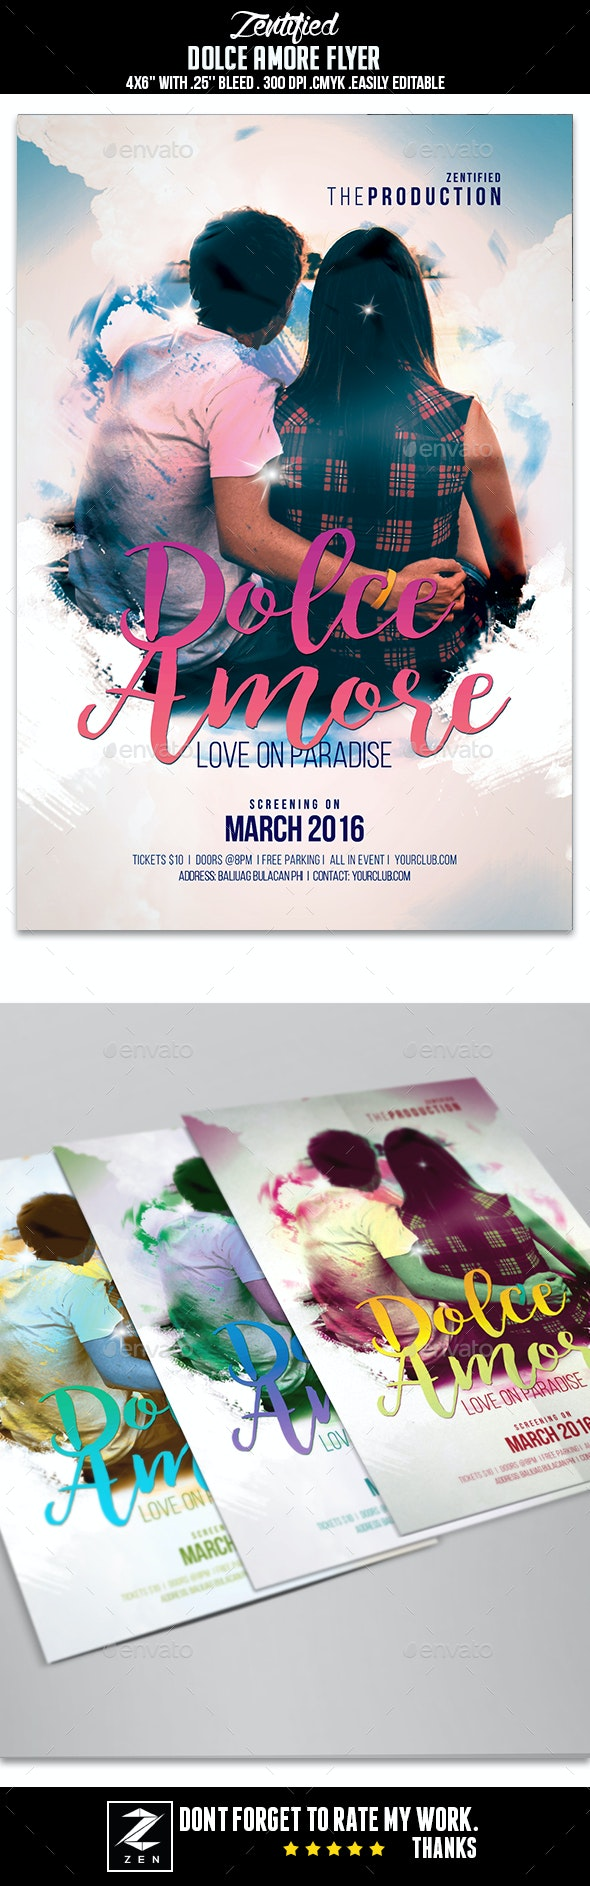 Dolce Amore Flyer - Weddings Cards & Invites